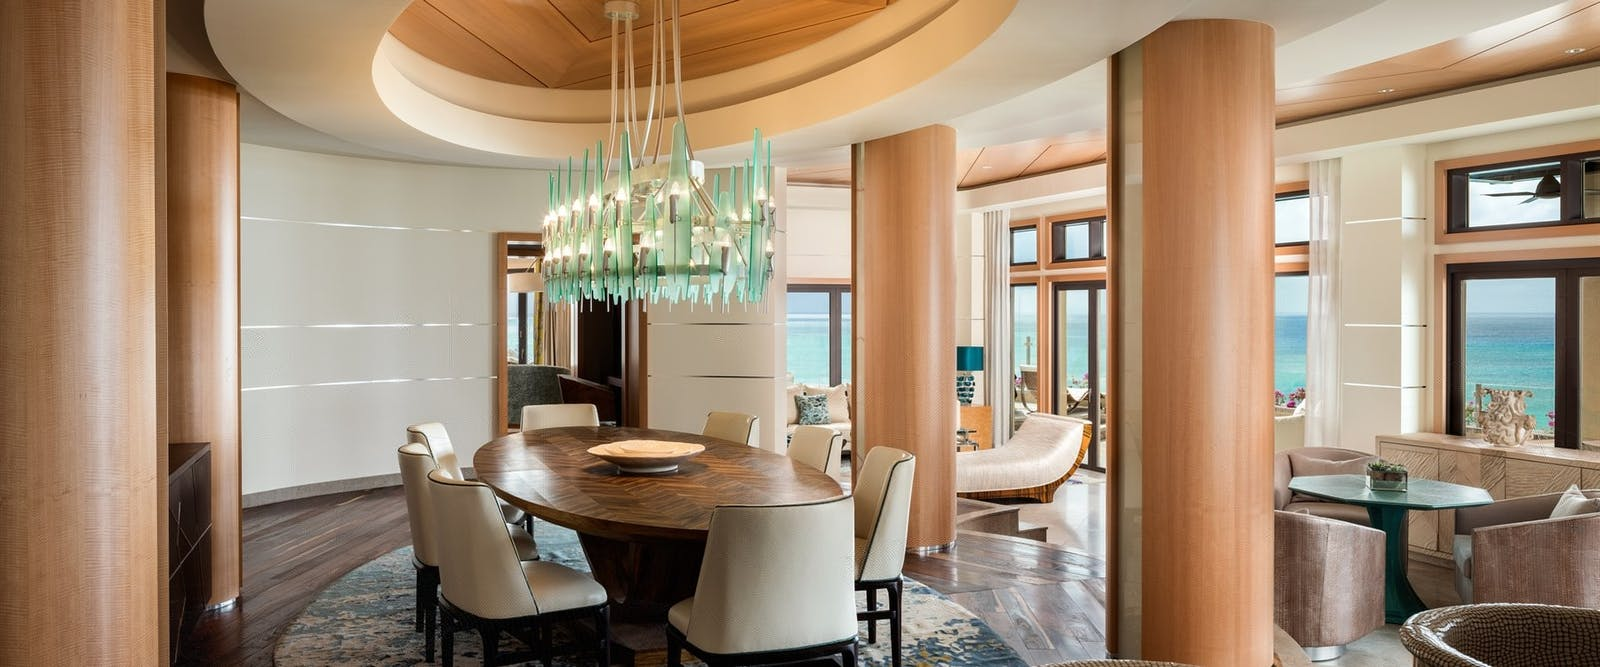 Penthouse Dining at The Ritz-Carlton, Grand Cayman, Cayman Islands, Cayman Islands